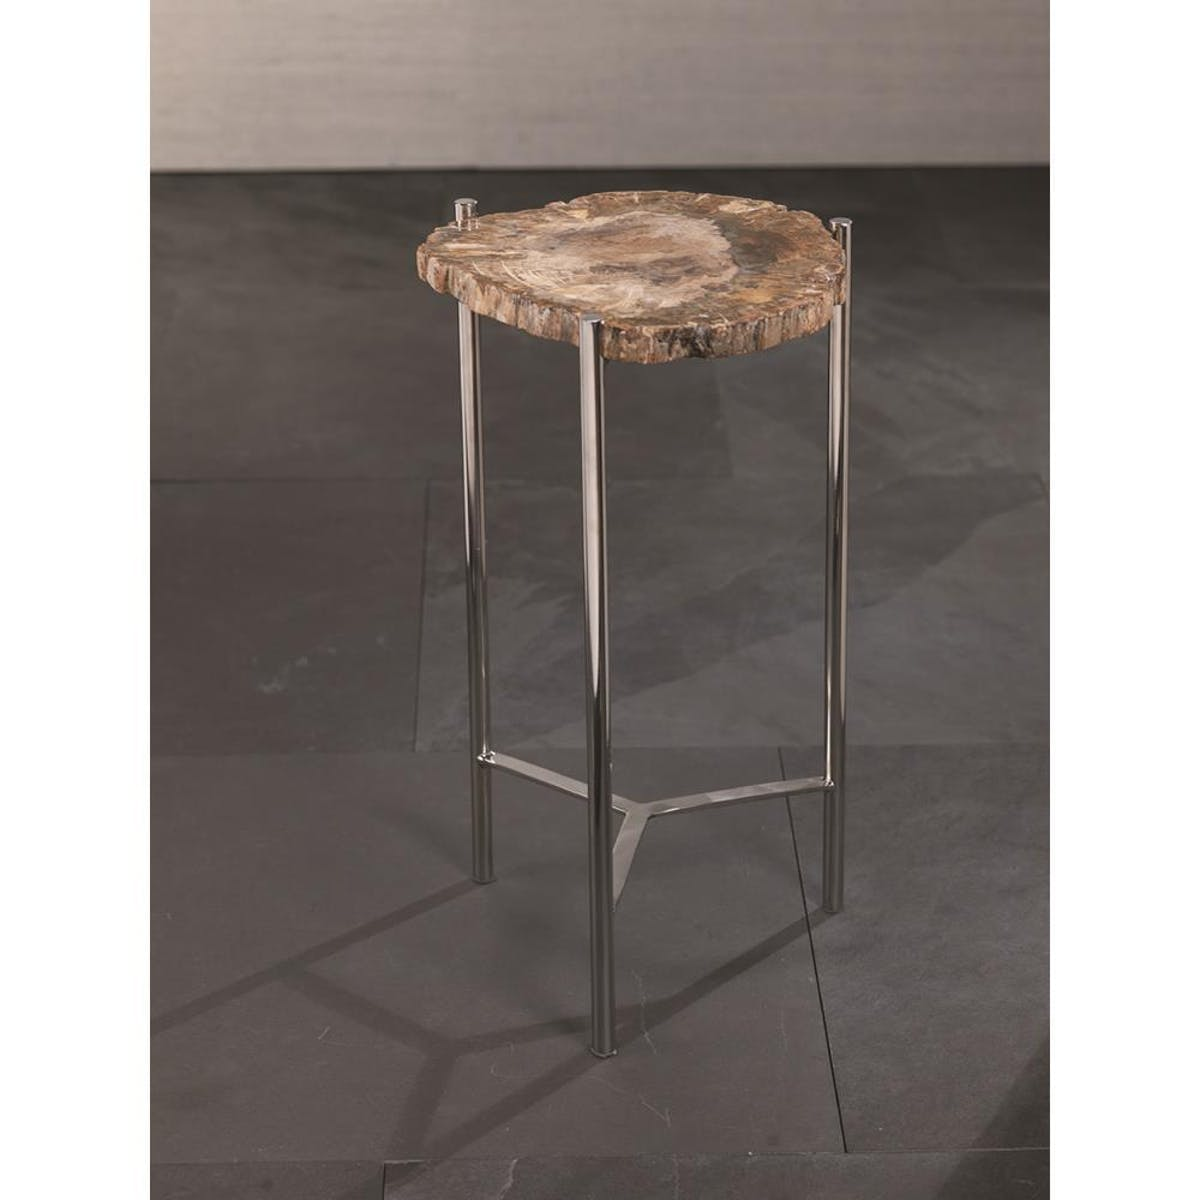 zodax pierce petrified wood accent table inch tall modish slab tap expand and metal furniture small corner cabinet half moon runner narrow mirrored console ikea storage ideas lamp